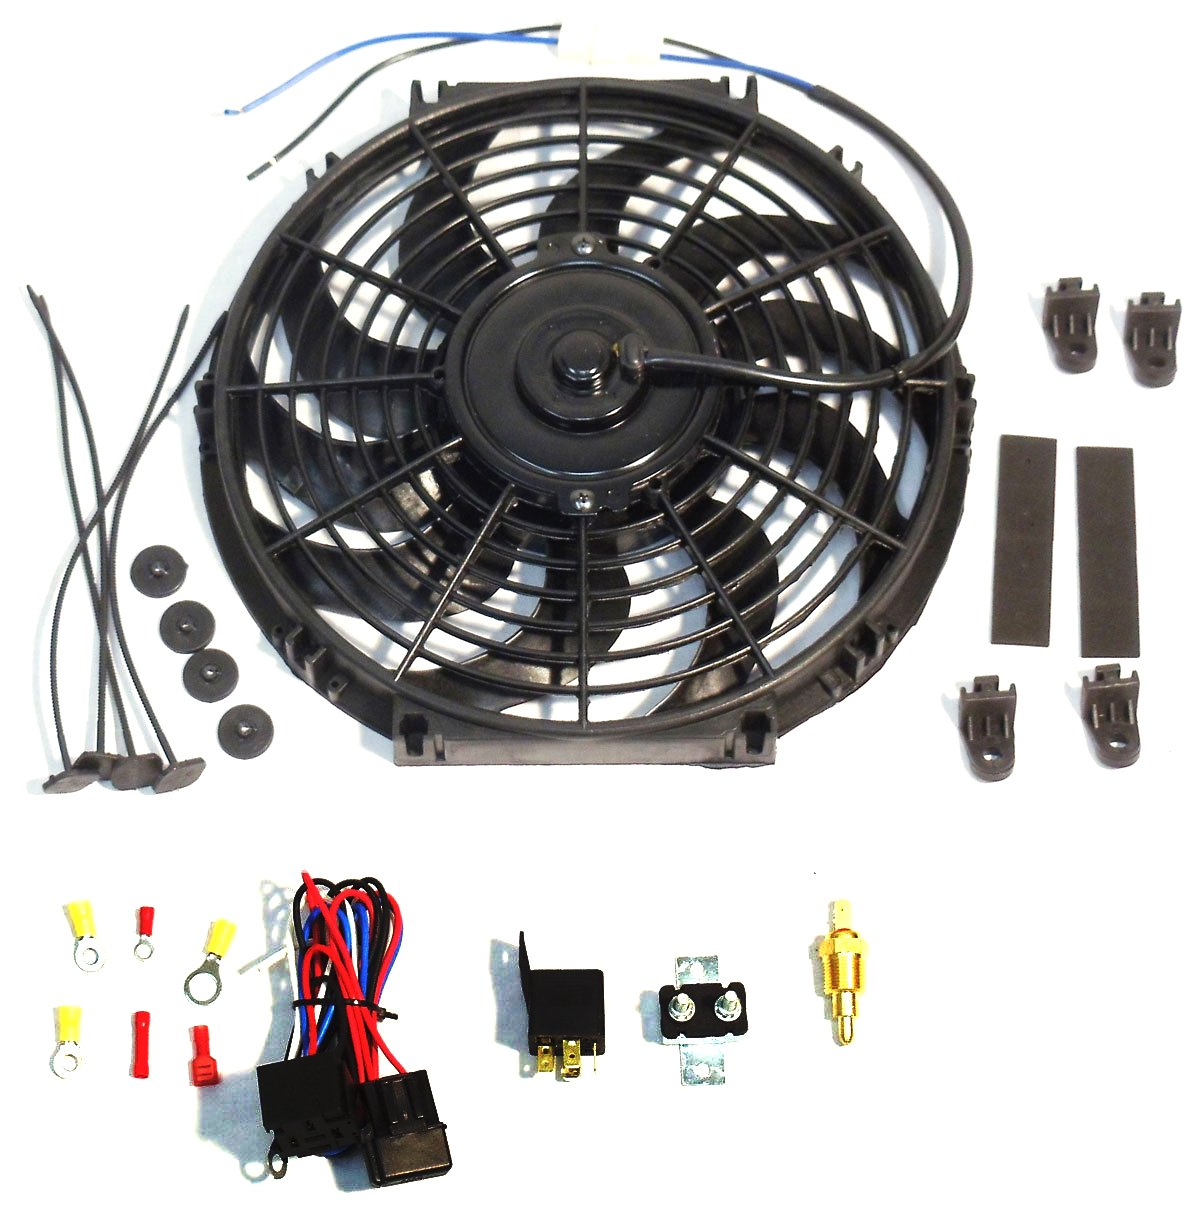 16 Electric Curveds Blade Reversible Cooling Fan 12v Car Thermostat Location Get Free Image About Wiring Diagram 3000cfm Kit Automotive